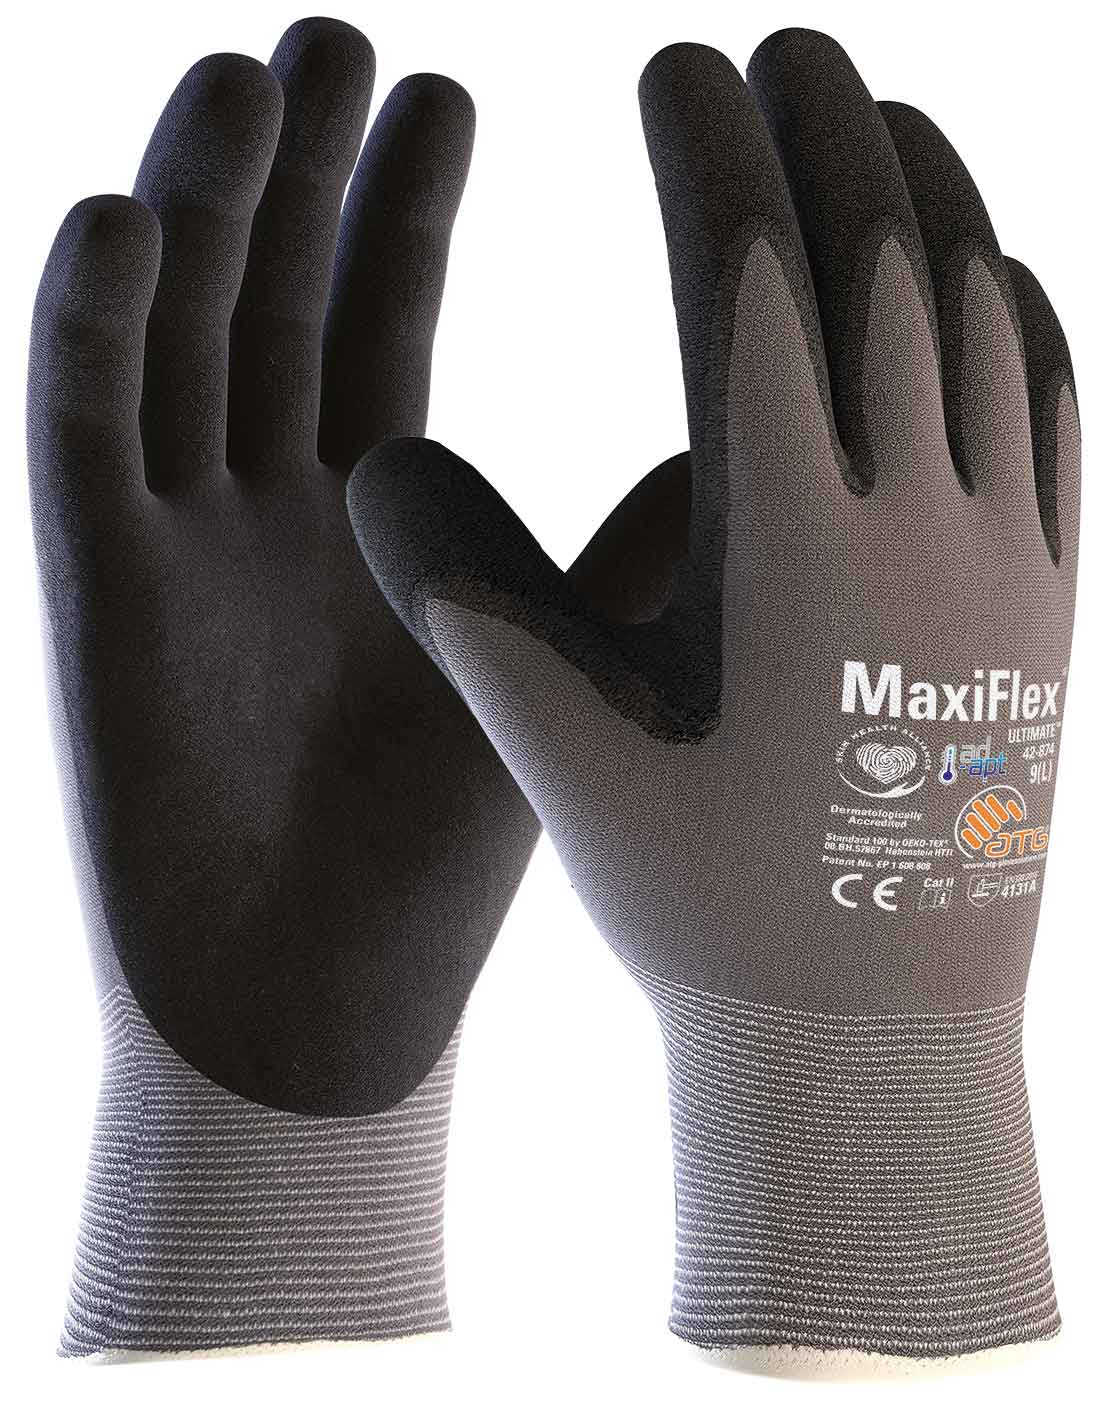 42-874 MaxiFlex® Ultimate™ with AD-APT™ Image